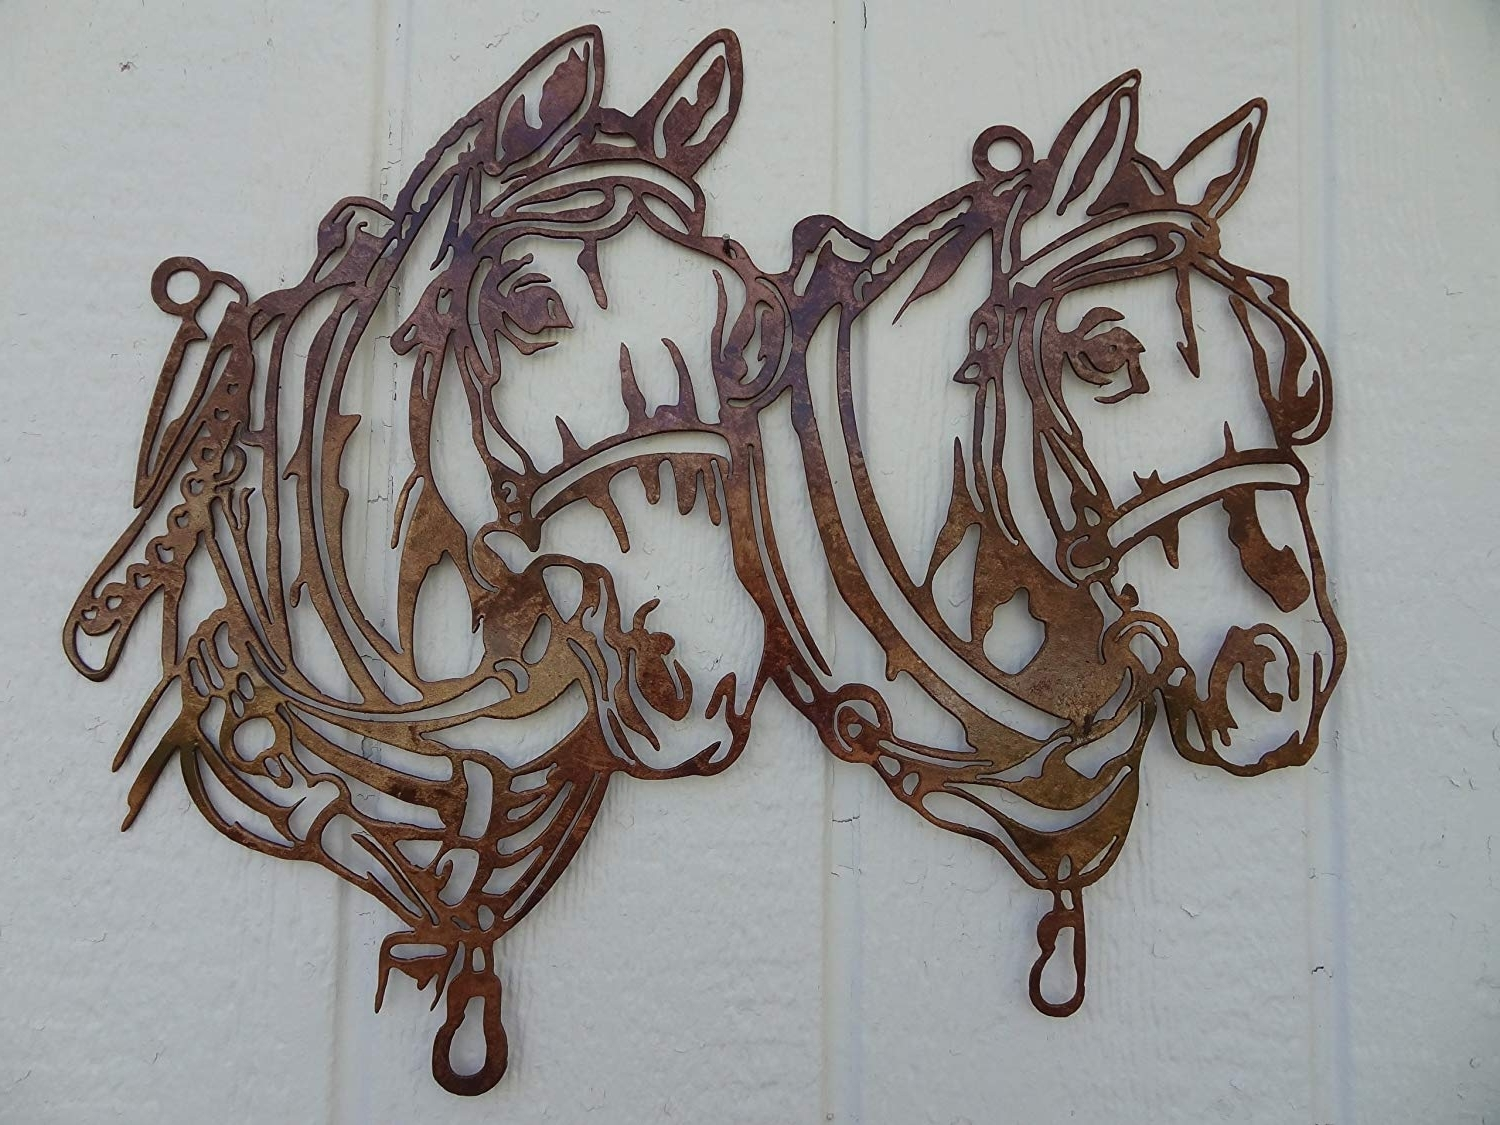 2018 Horses Wall Art Throughout Amazon: Draft Horse Head Metal Wall Art Country Rustic Home (View 1 of 20)